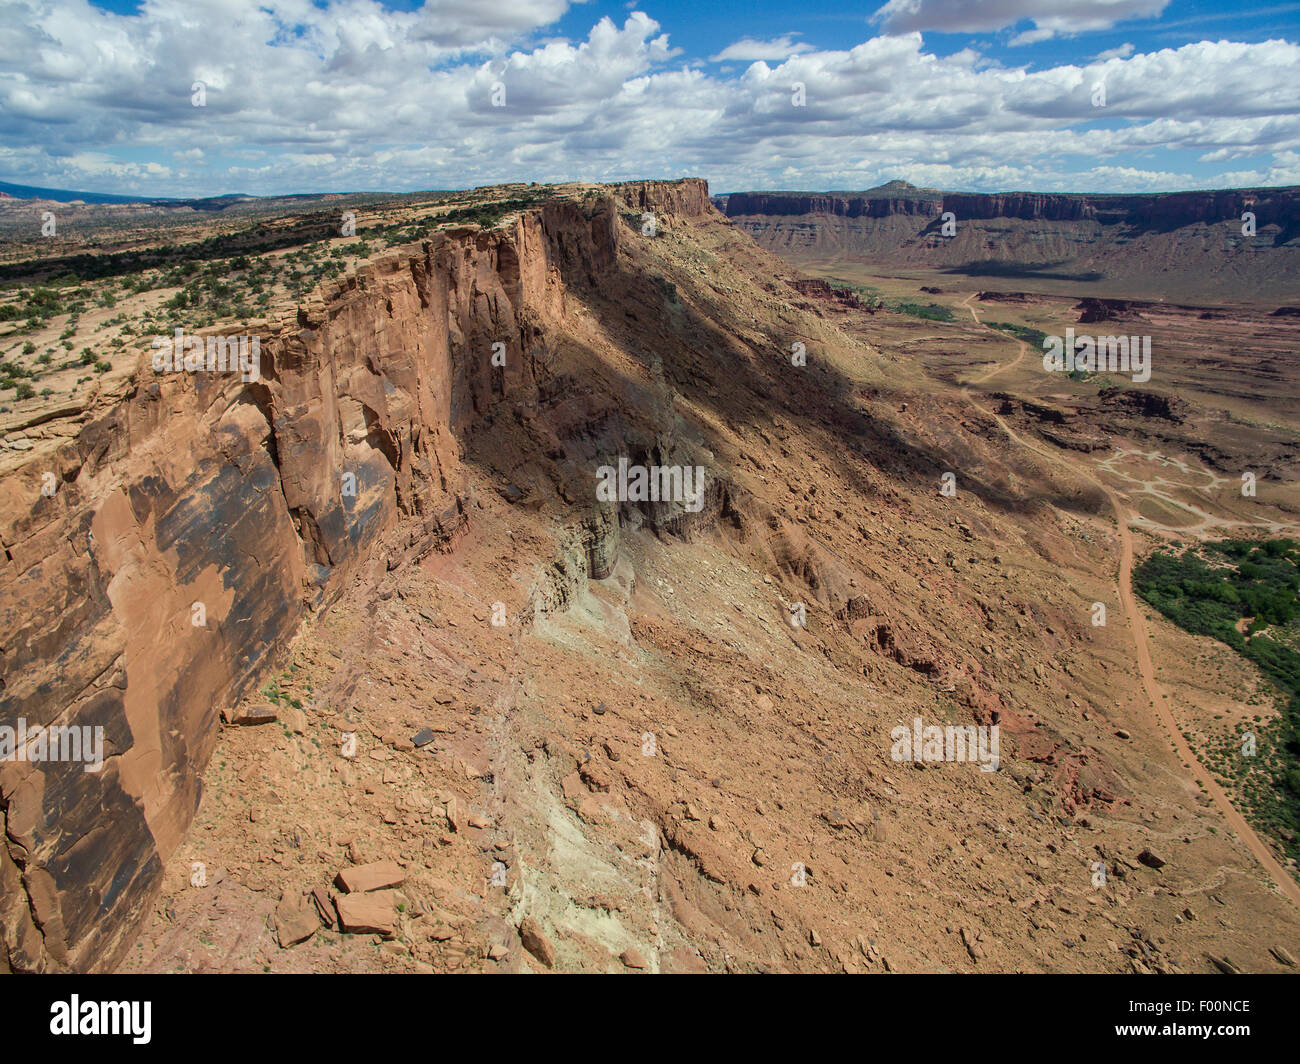 Aerial of Cliff and Mesa - Moab, UT - Stock Image